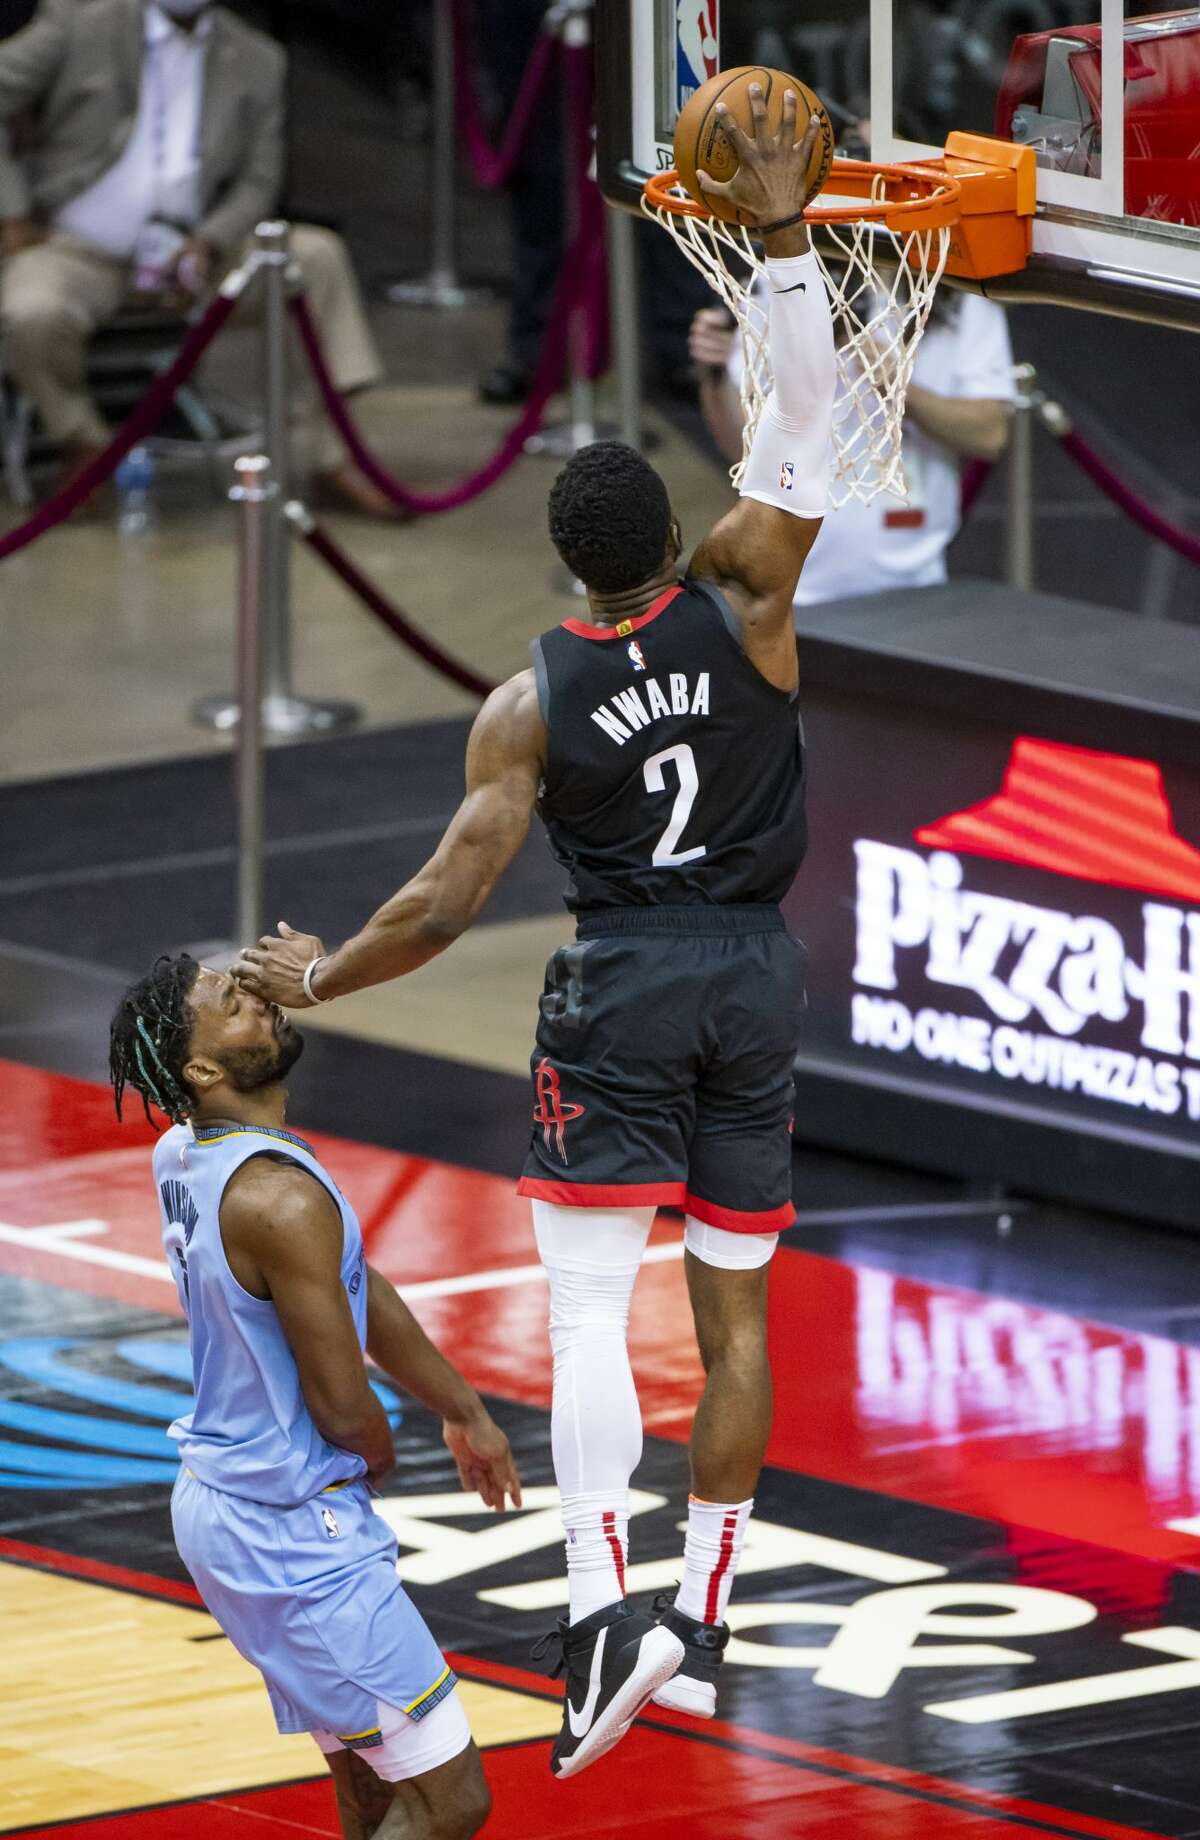 Houston Rockets guard David Nwaba (2) dunks over Memphis Grizzlies forward Justise Winslow (7) during the third quarter of an NBA basketball game between the Houston Rockets and Memphis Grizzlies on Sunday, Feb. 28, 2021, at Toyota Center in Houston.